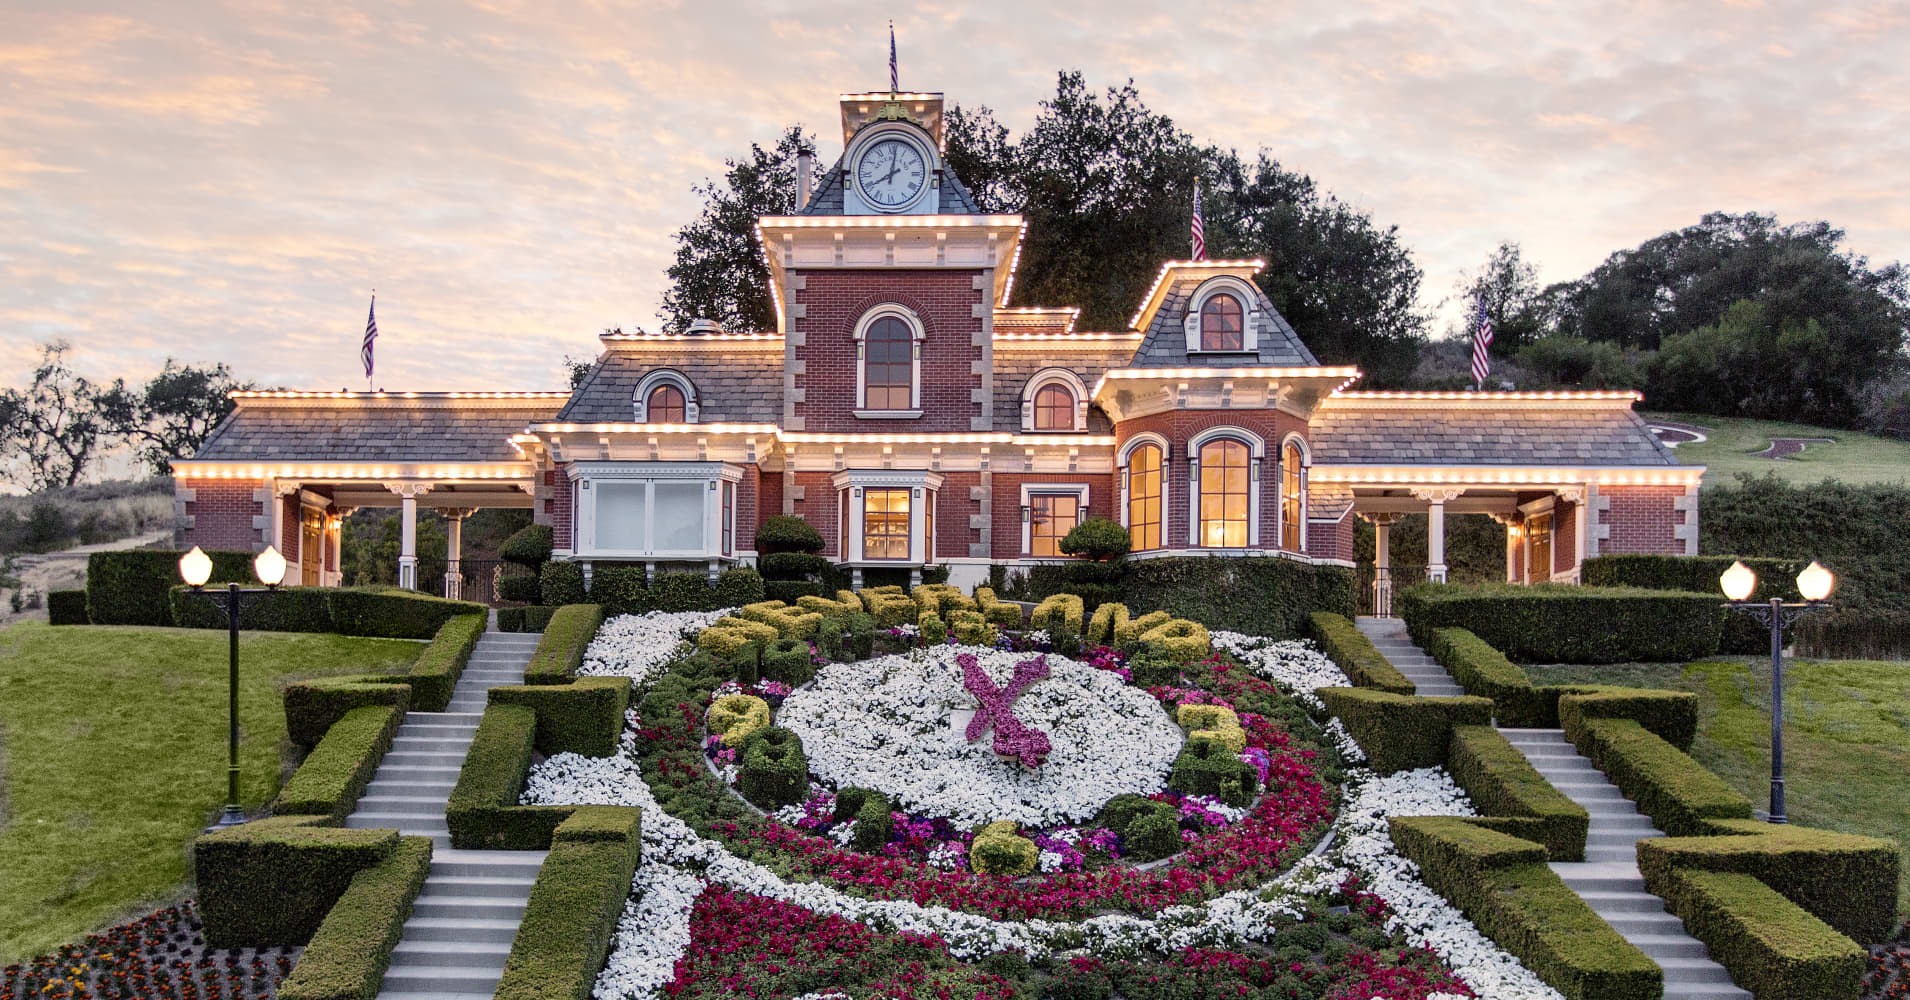 Michael Jackson's 'Neverland' ranch is on sale for a discounted $31 million